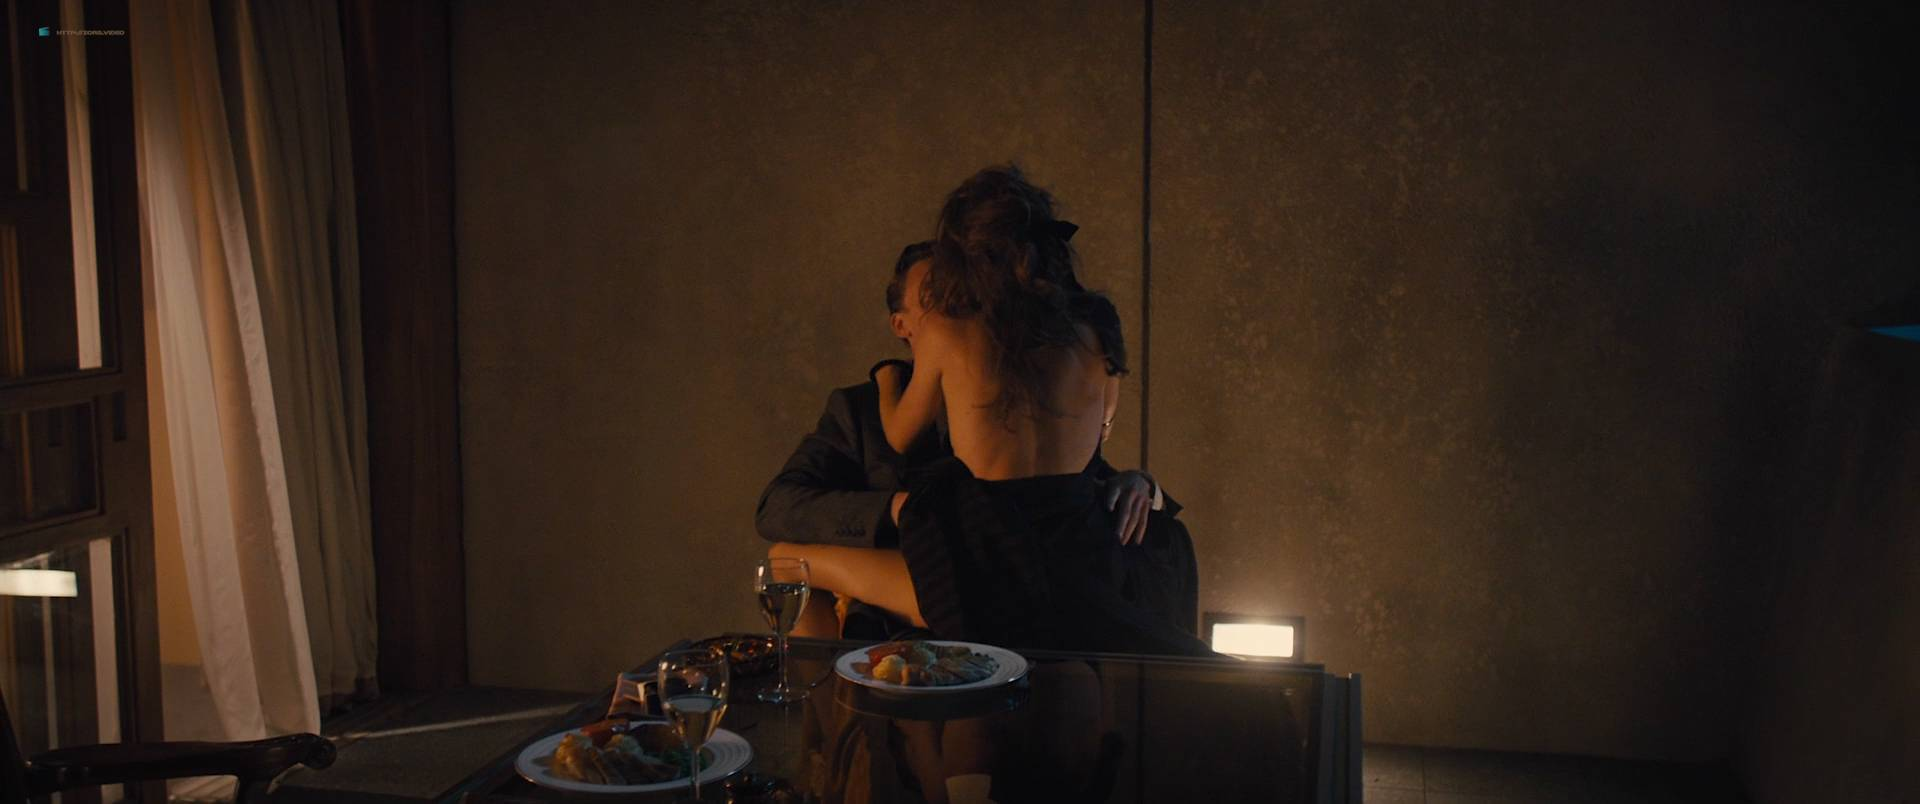 Sienna Miller nude boobs and hot sex - High-Rise (2015) HD 1080p (14)